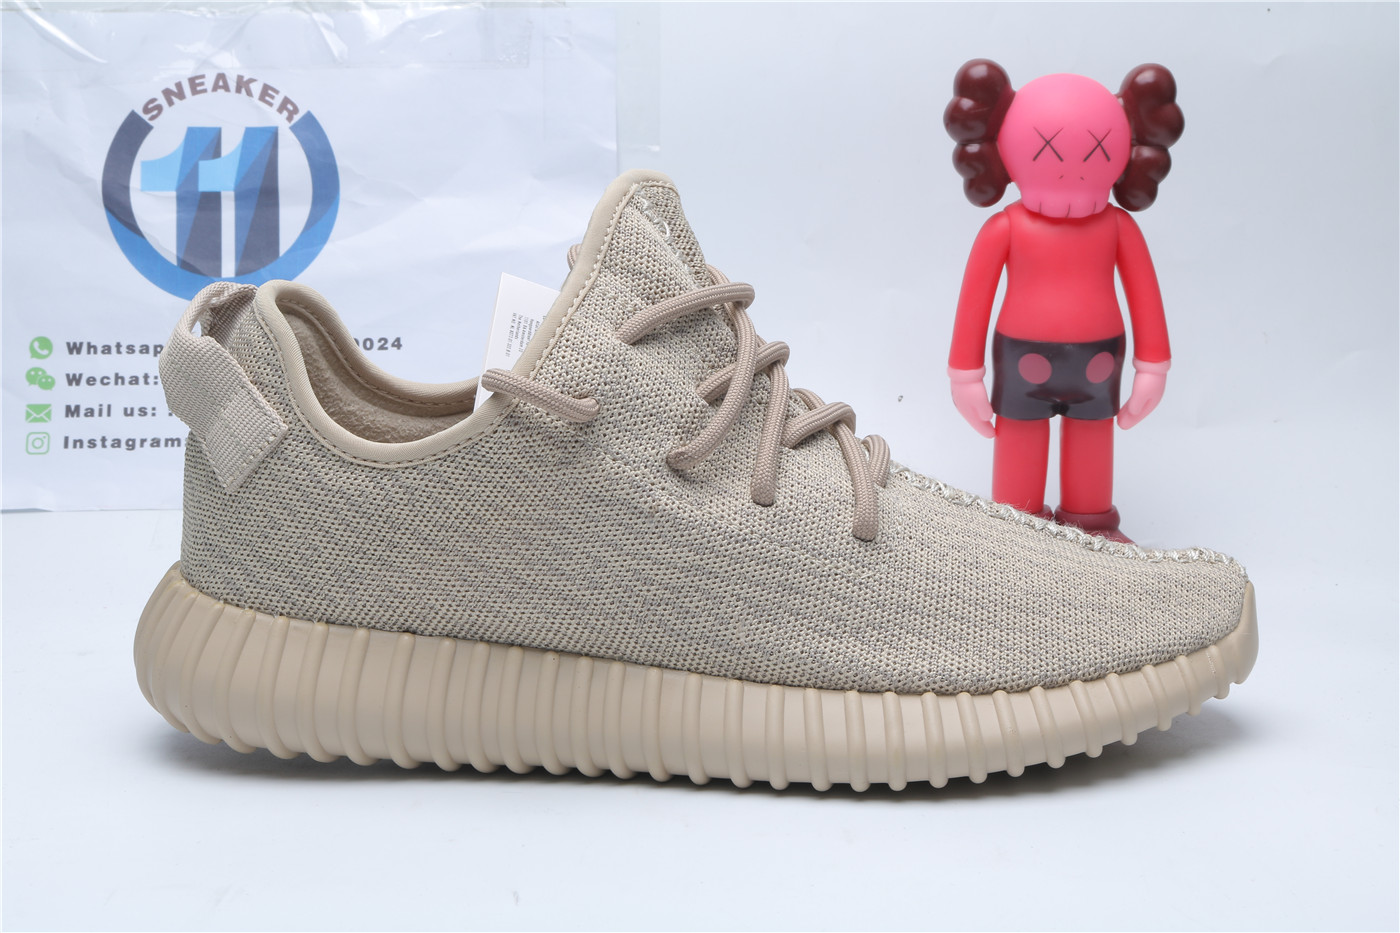 Adidas Yeezy 350 Boost Oxford Tan 2661